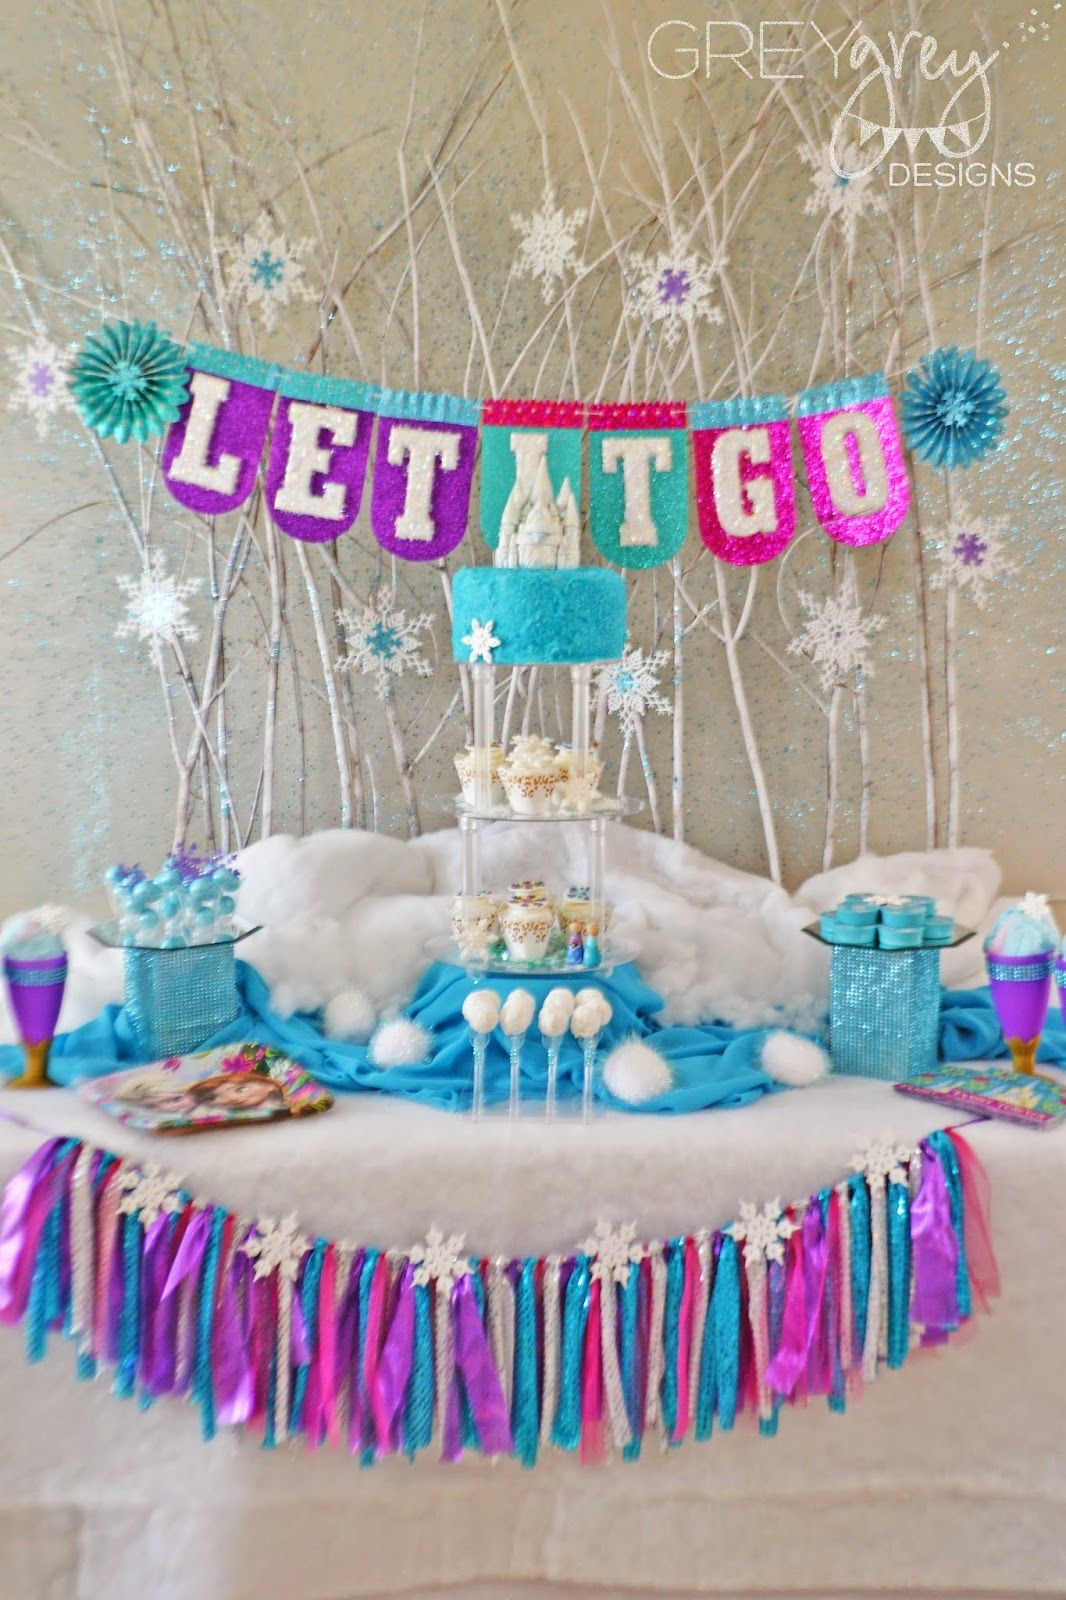 GreyGrey Designs Frozen Party For Evite And Birthday Express